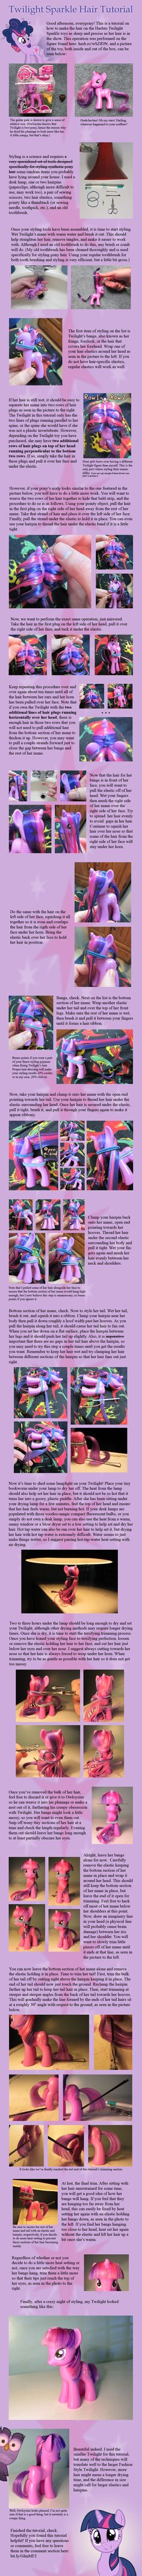 Twilight Sparkle Hair Tutorial by countschlick.deviantart.com